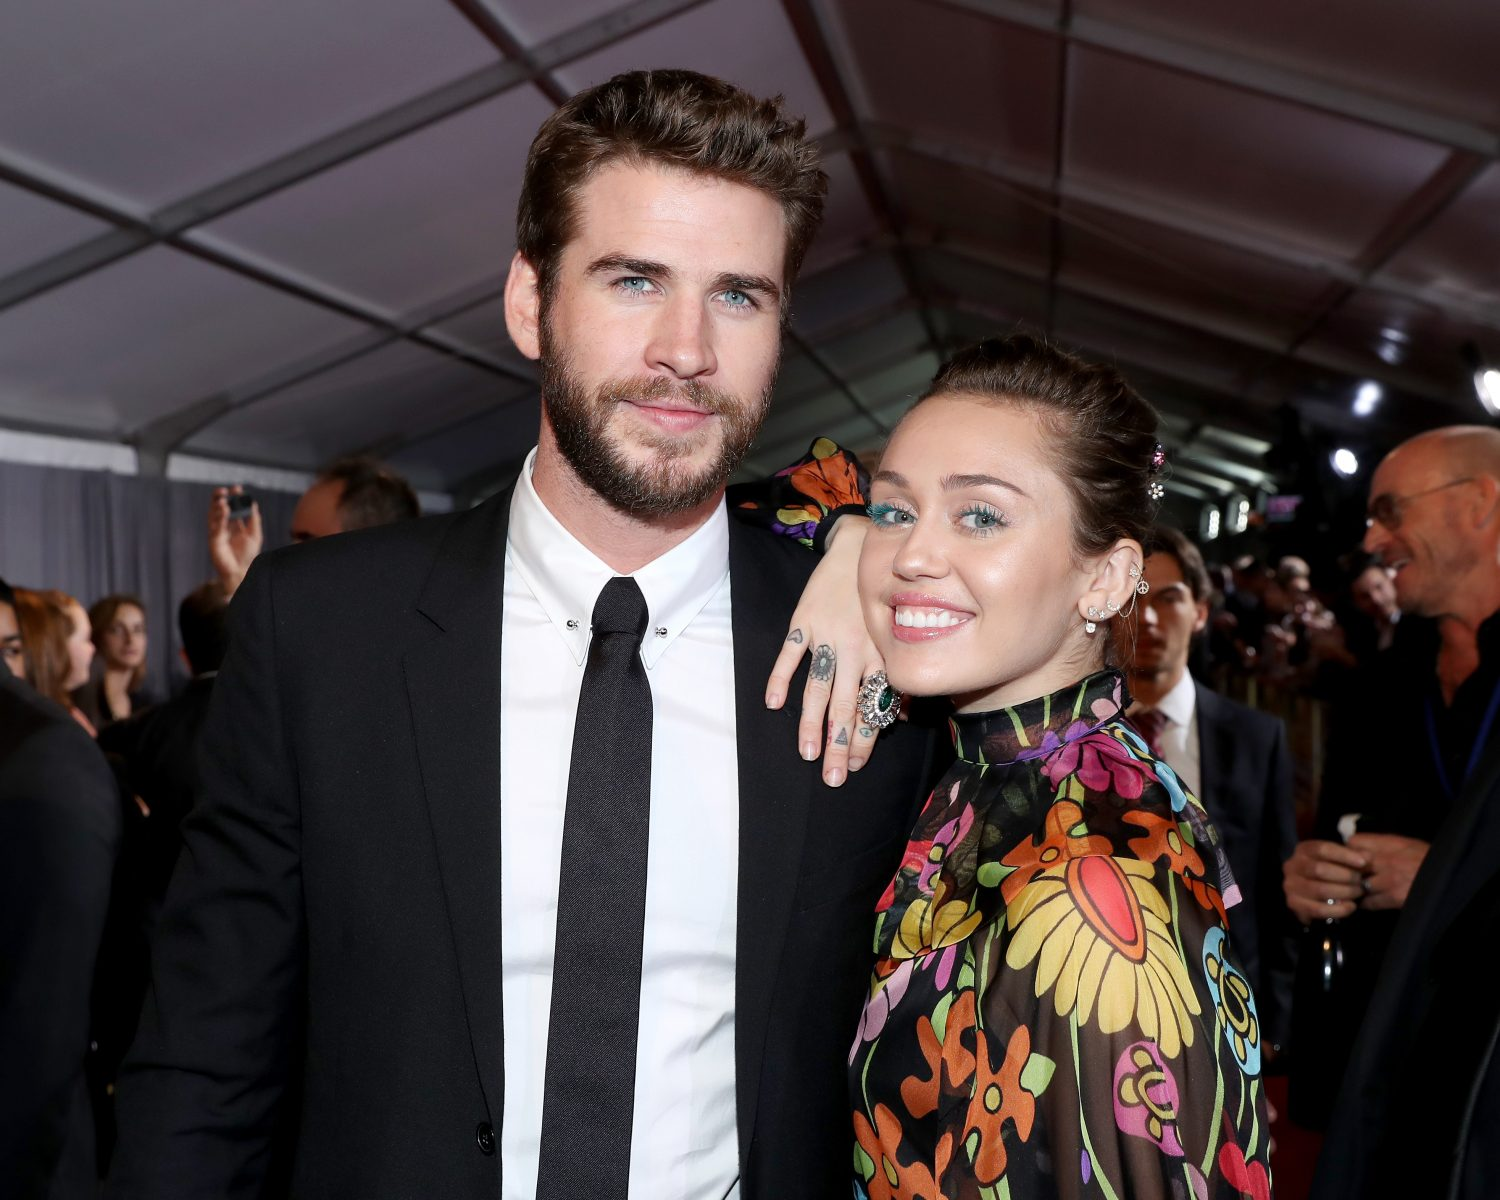 13b6fb164 HOLLYWOOD, CA - OCTOBER 10: Actor Liam Hemsworth (L) and Miley Cyrus at The  World Premiere of Marvel Studios'